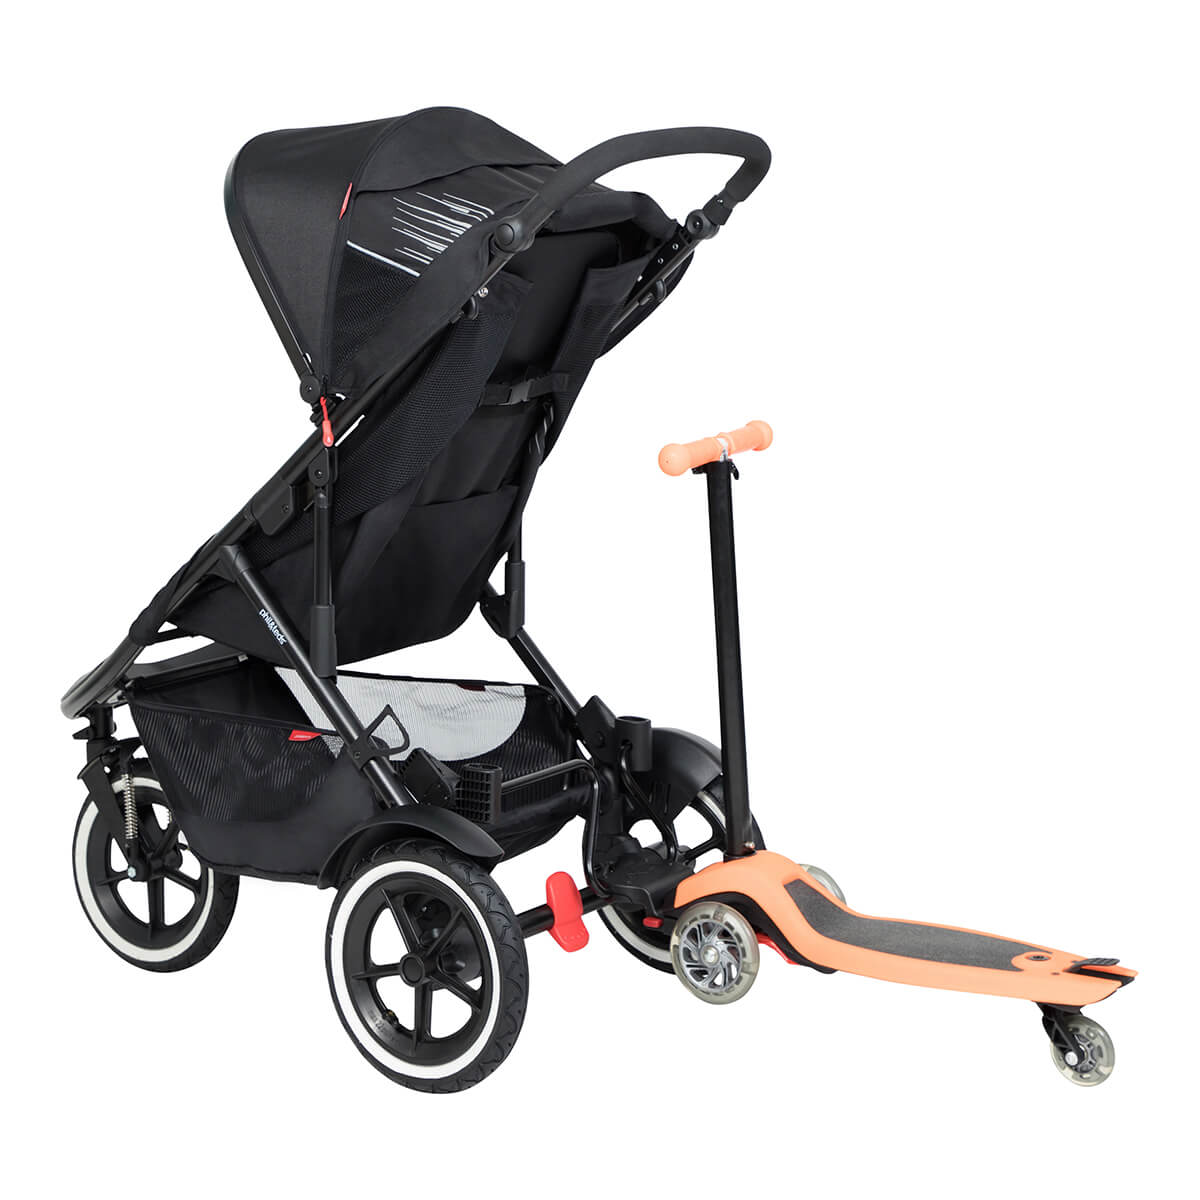 https://cdn.accentuate.io/4509866885217/19793940119722/philteds-sport-buggy-with-freerider-stroller-board-in-rear-v1626485293317.jpg?1200x1200